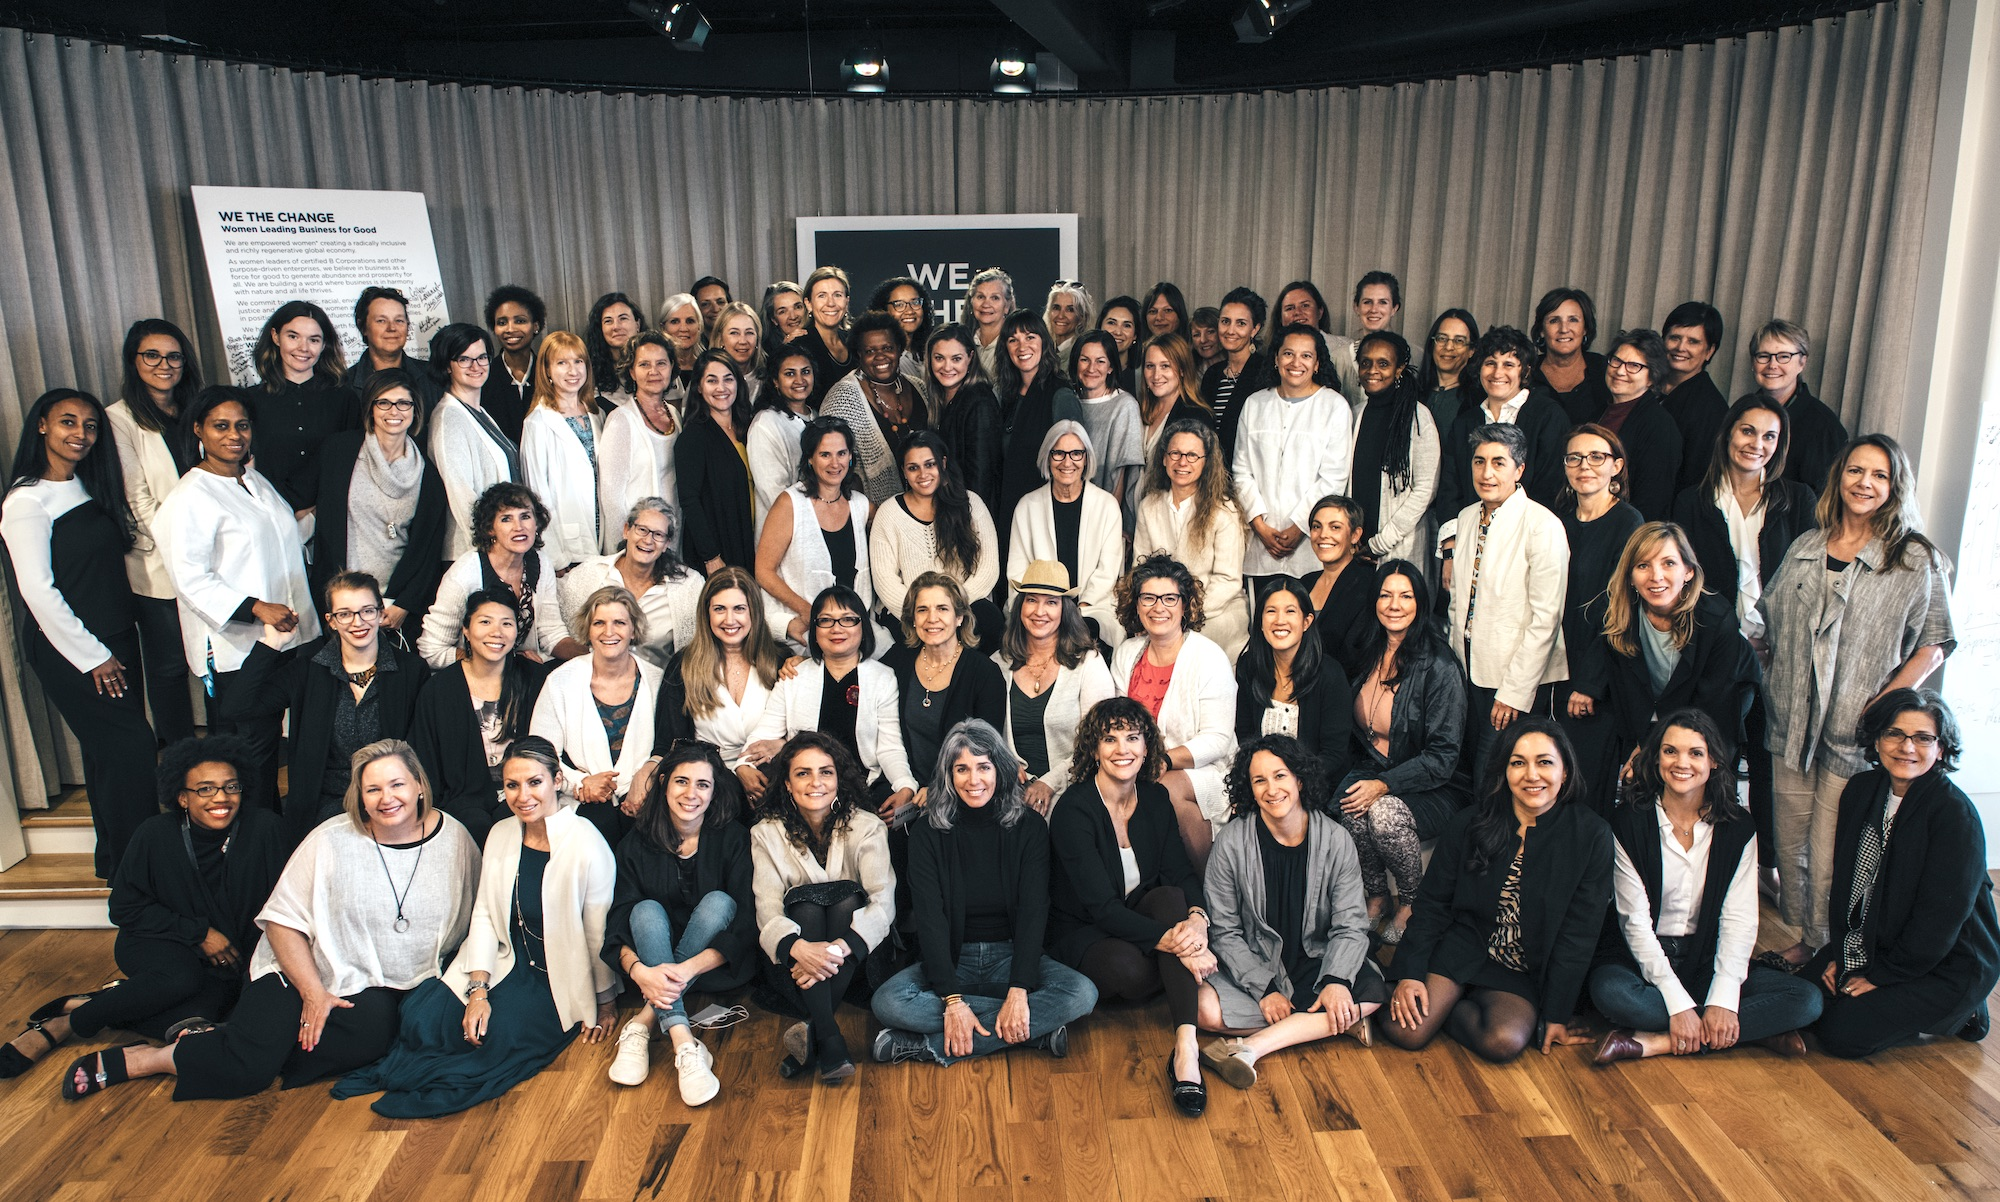 100 women CEOs of B Corporations gathered on a stage, wearing black and white tops.